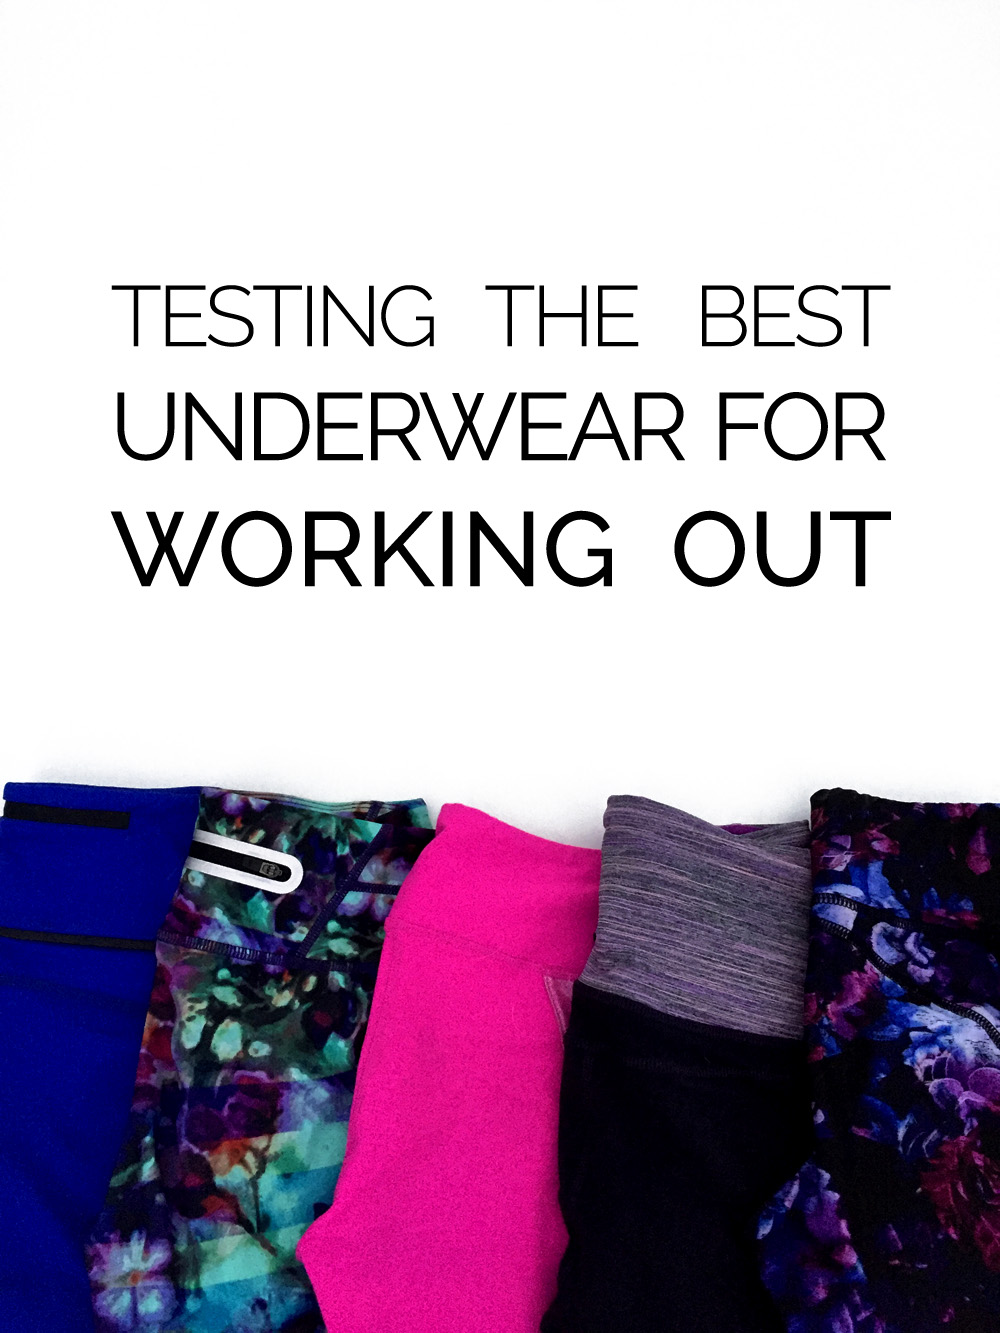 ed0b5b04758e9 Testing The Best Underwear for Working Out - Agent Athletica